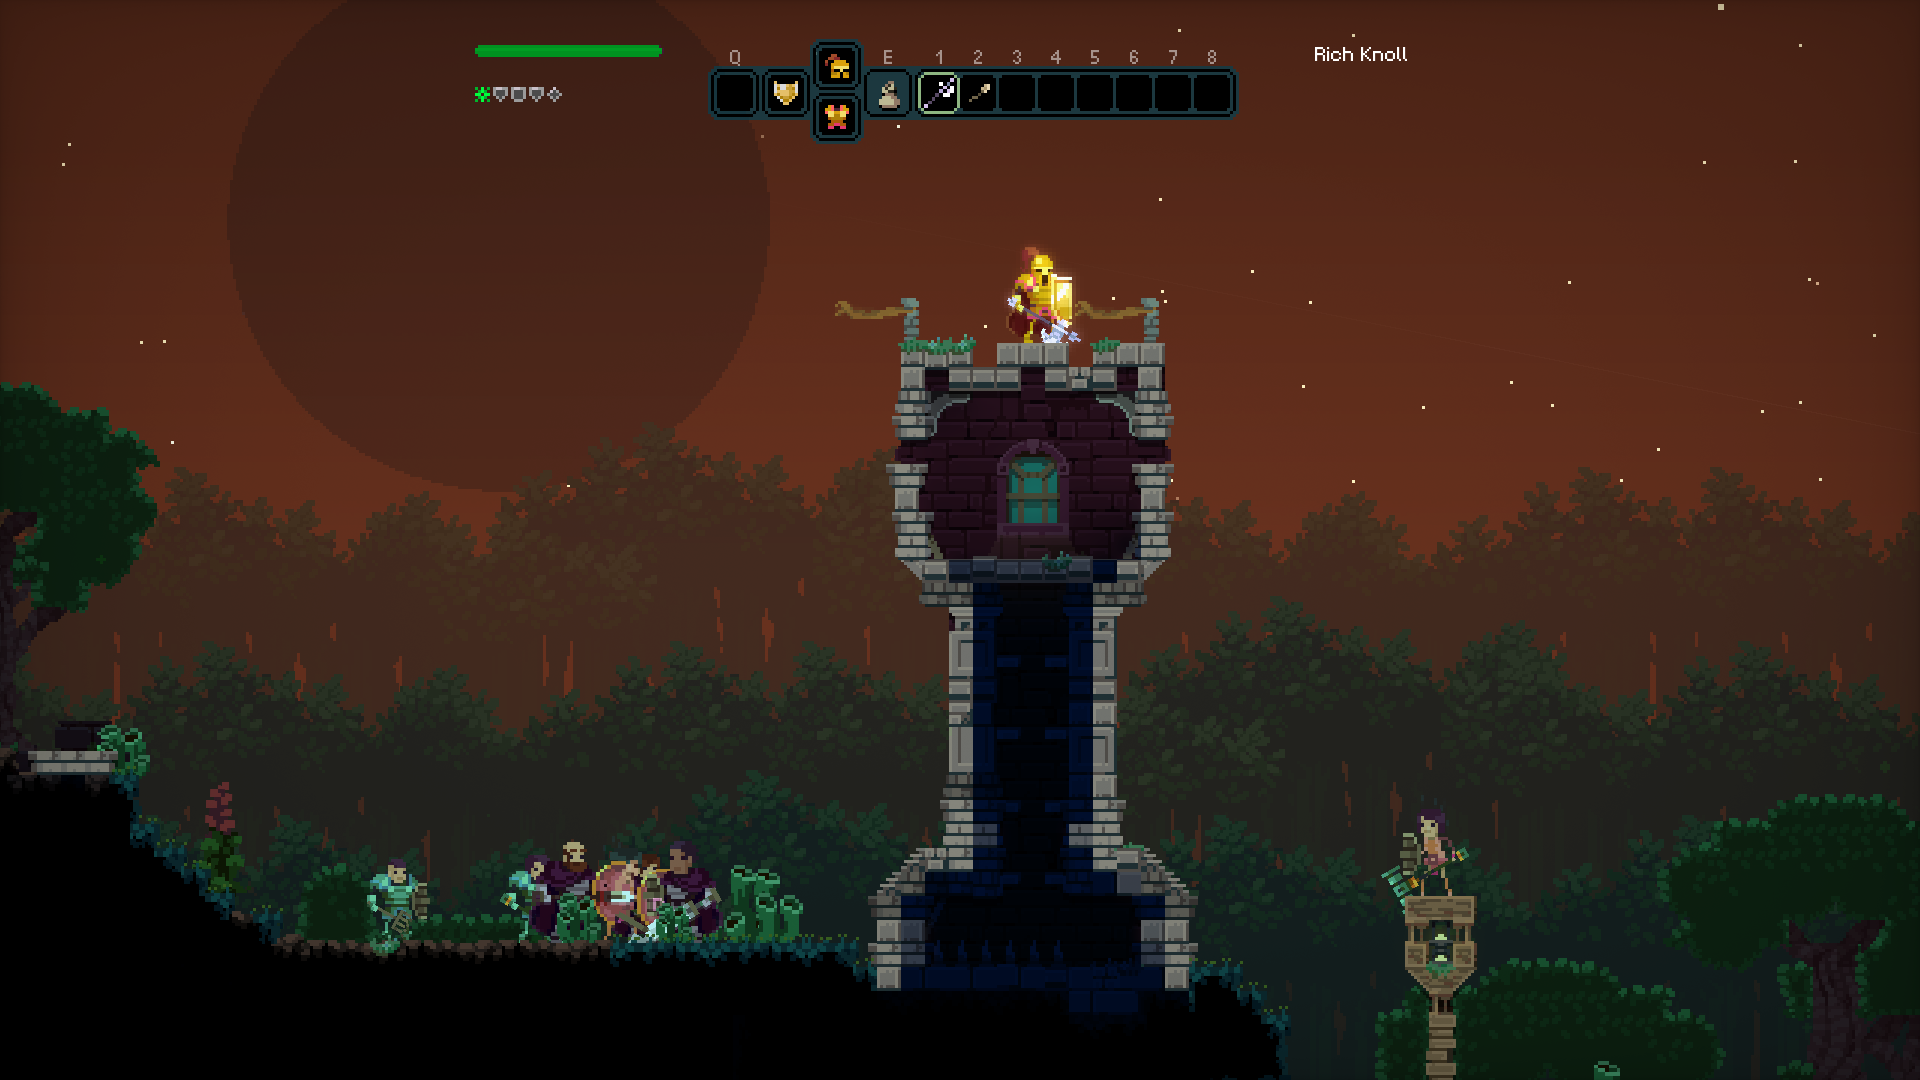 MoonQuest – Procedurally generated adventure game by @eigenbom